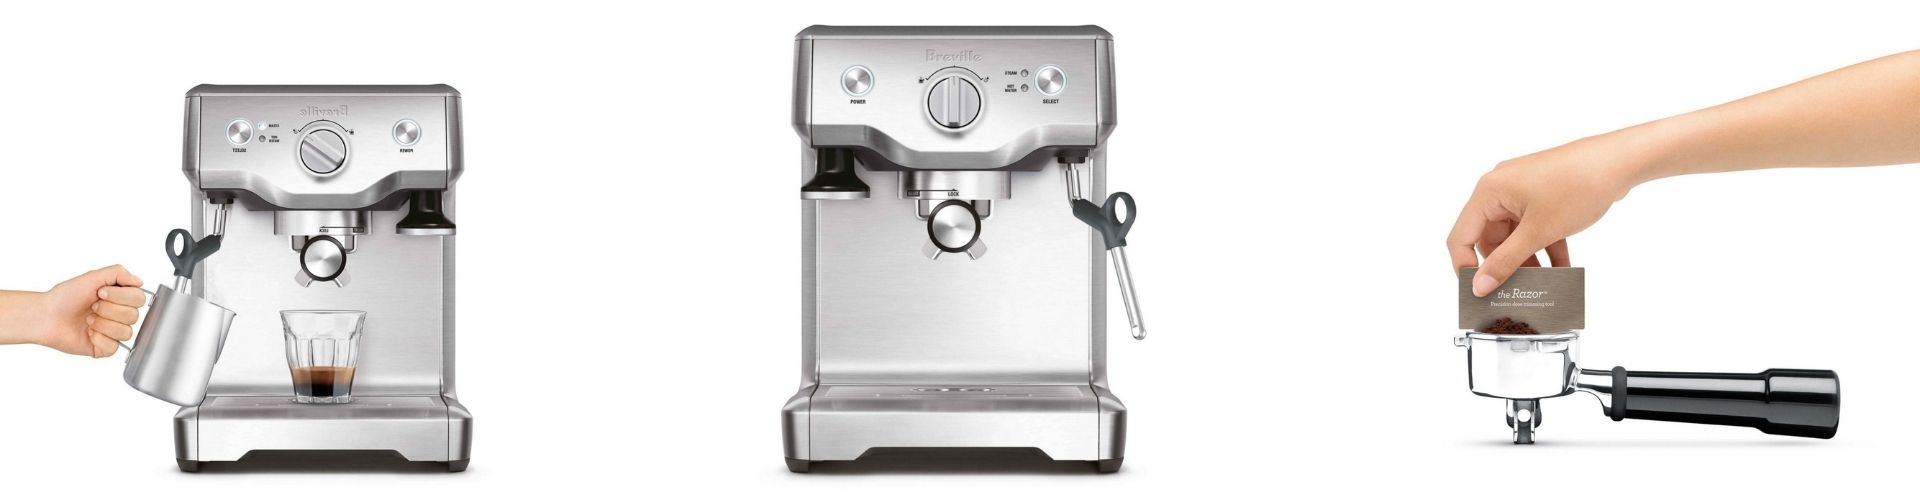 Breville Duo Temp Pro: Is it Worth the Hype?